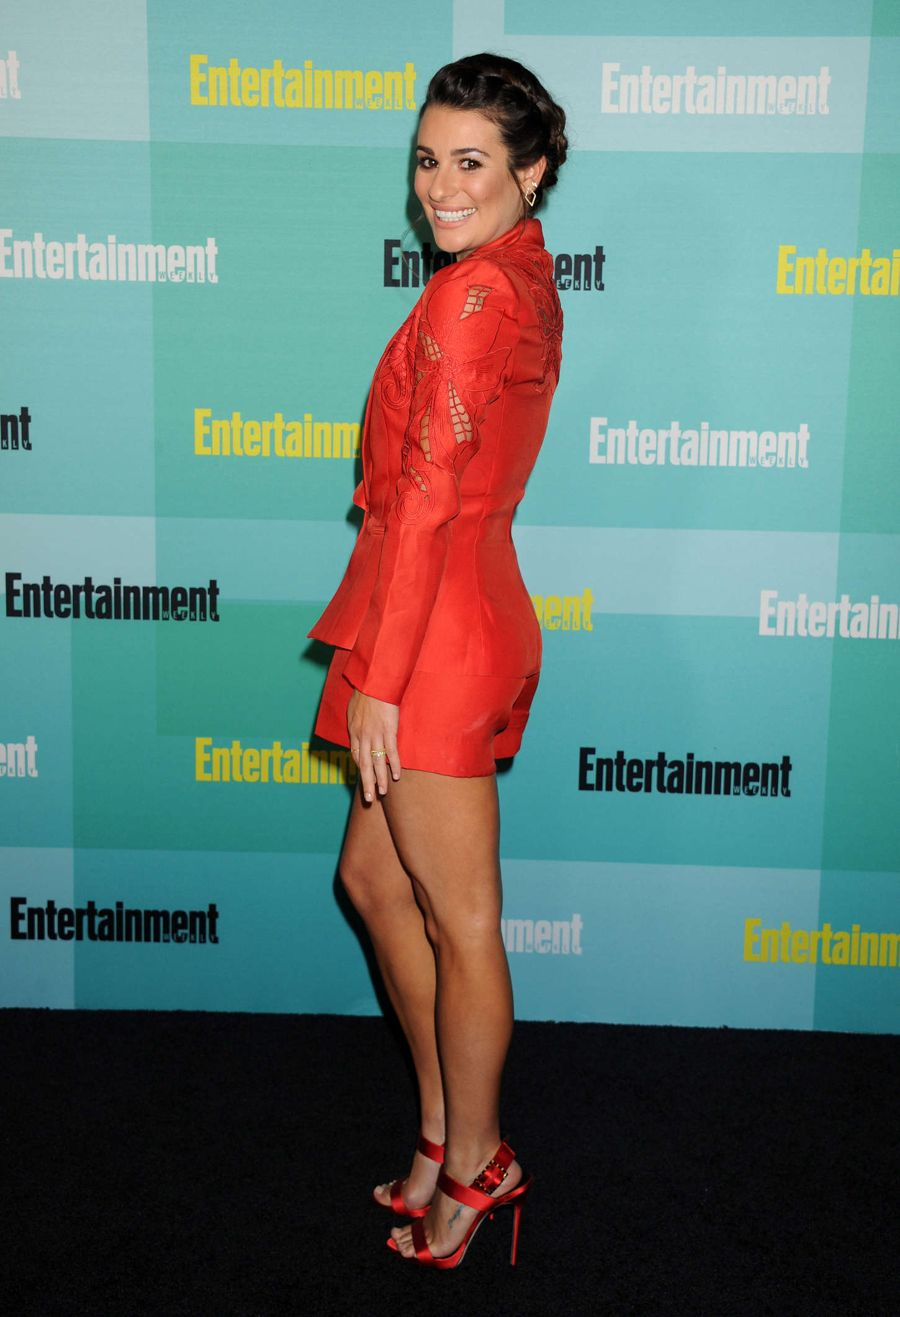 Lea Michele - Entertainment Weekly Party at Comic-Con